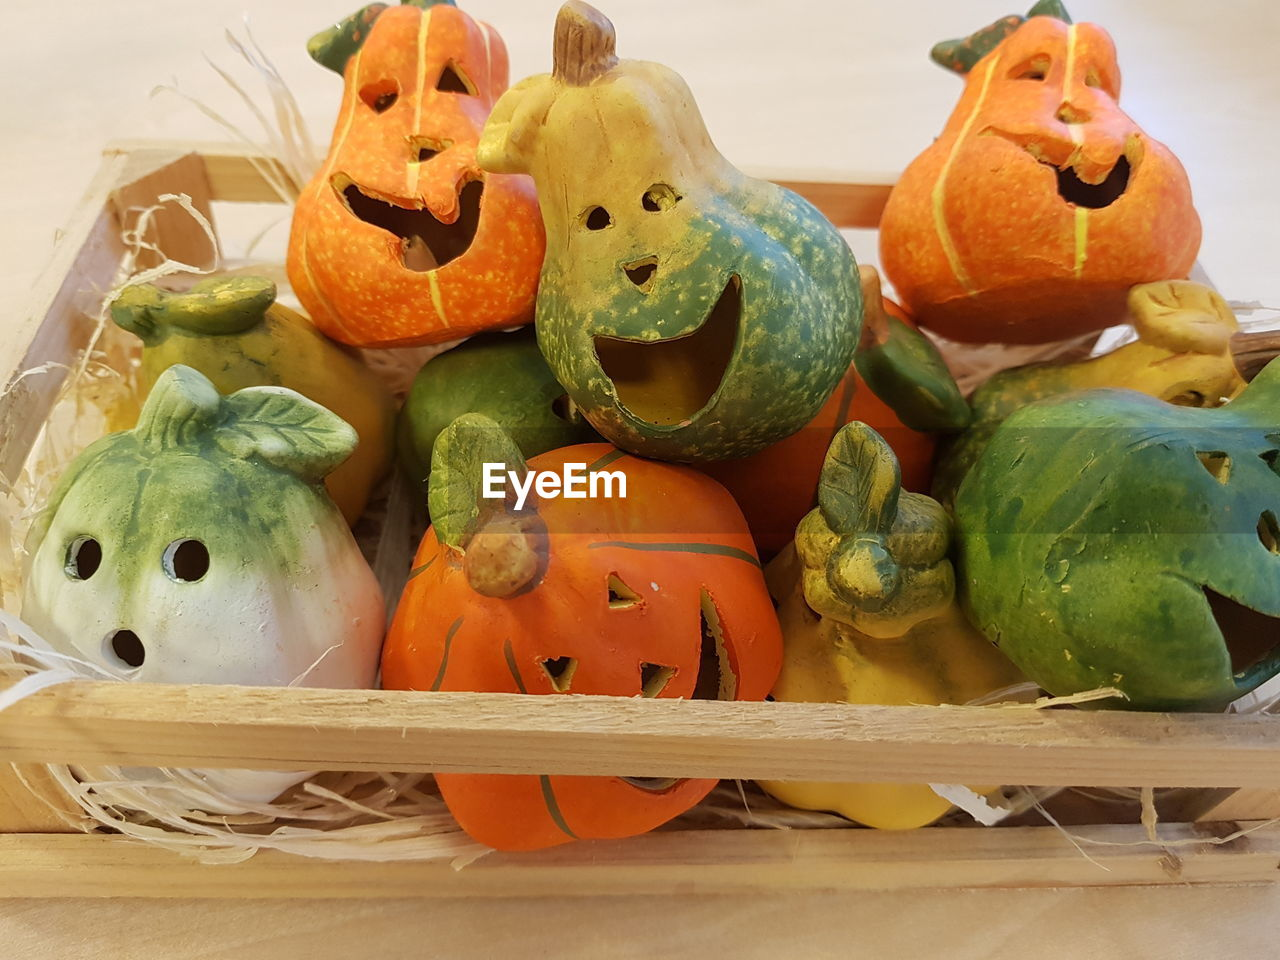 pumpkin, still life, art and craft, animal representation, food and drink, creativity, vegetable, no people, food, halloween, anthropomorphic face, freshness, basket, indoors, healthy eating, celebration, jack o lantern, close-up, day